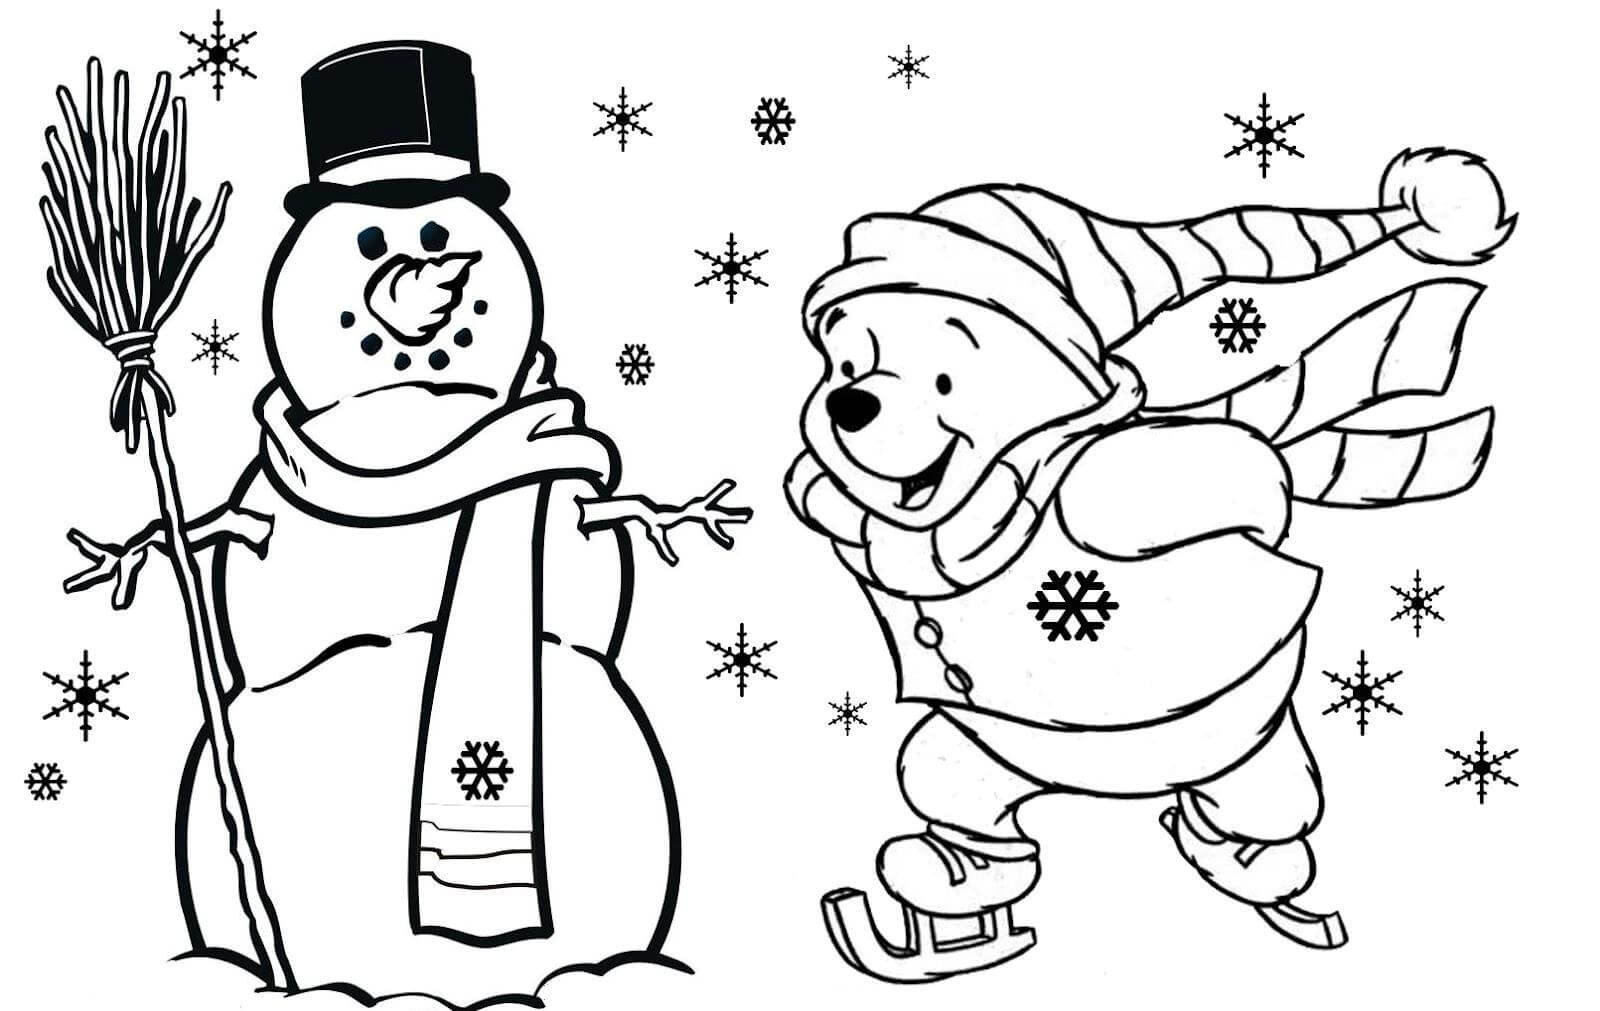 Free Christmas Coloring Pages For Kids  Christmas Coloring Pages To Print Free